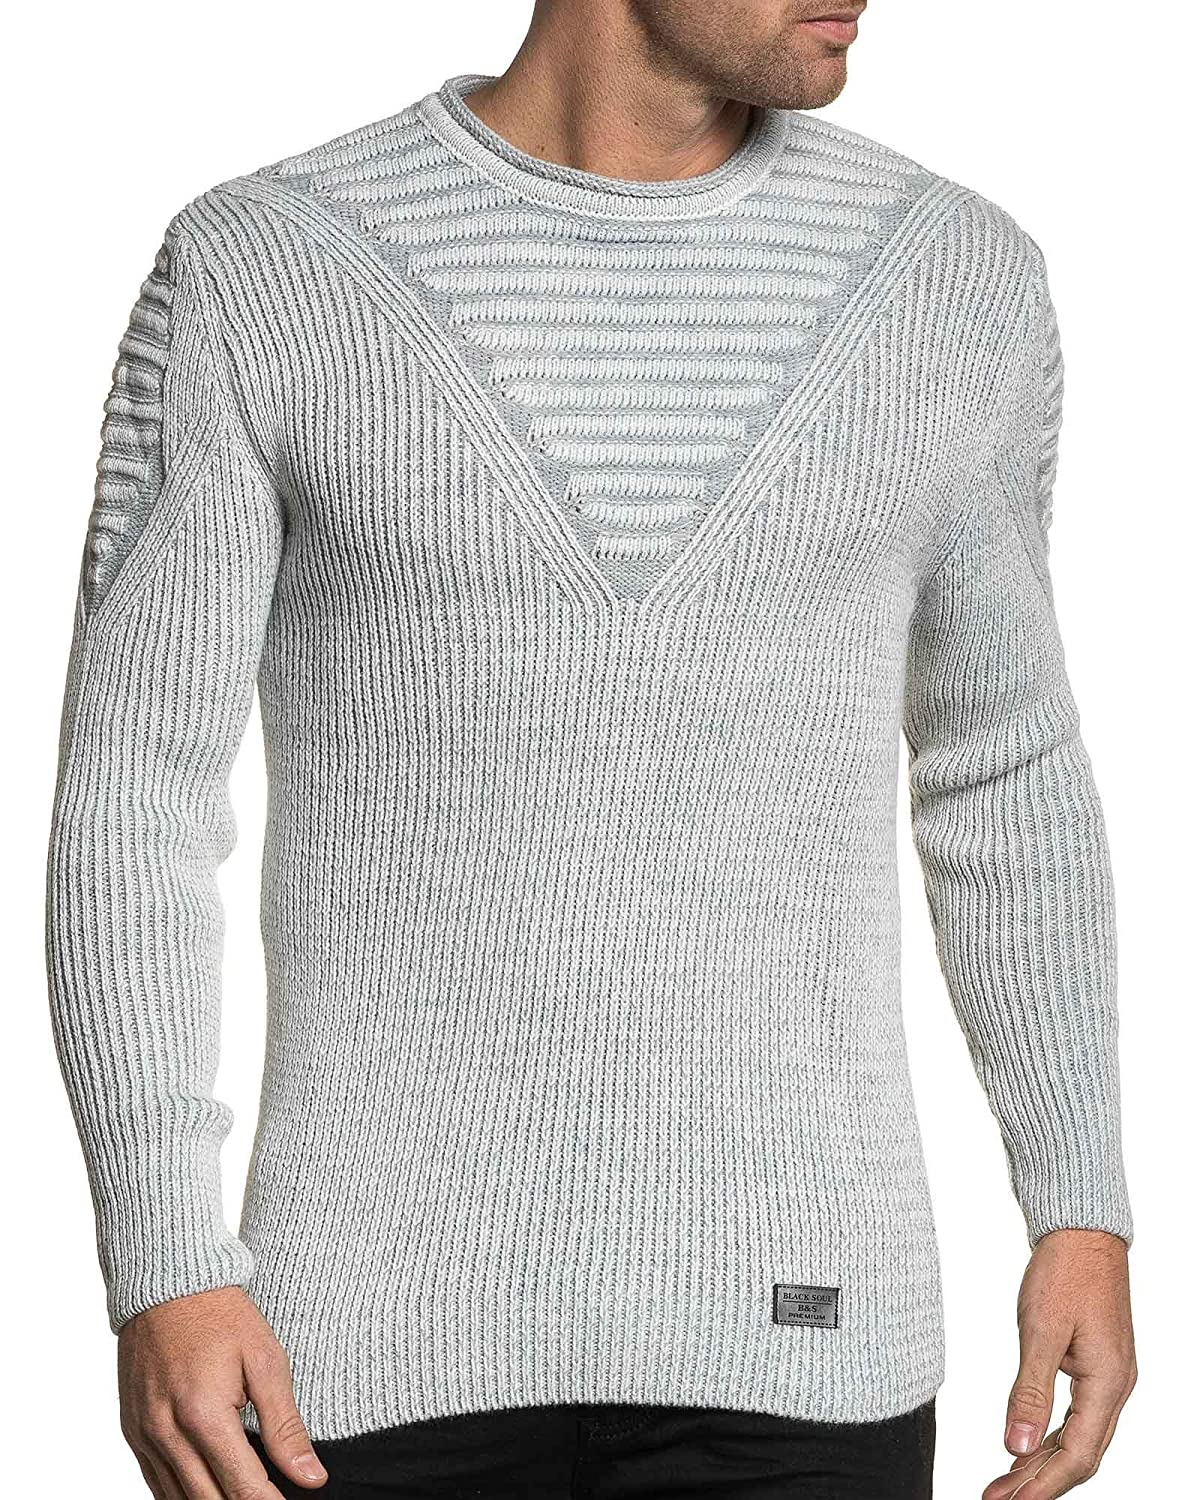 BLZ jeans - white sweater ribbed crew neck Men